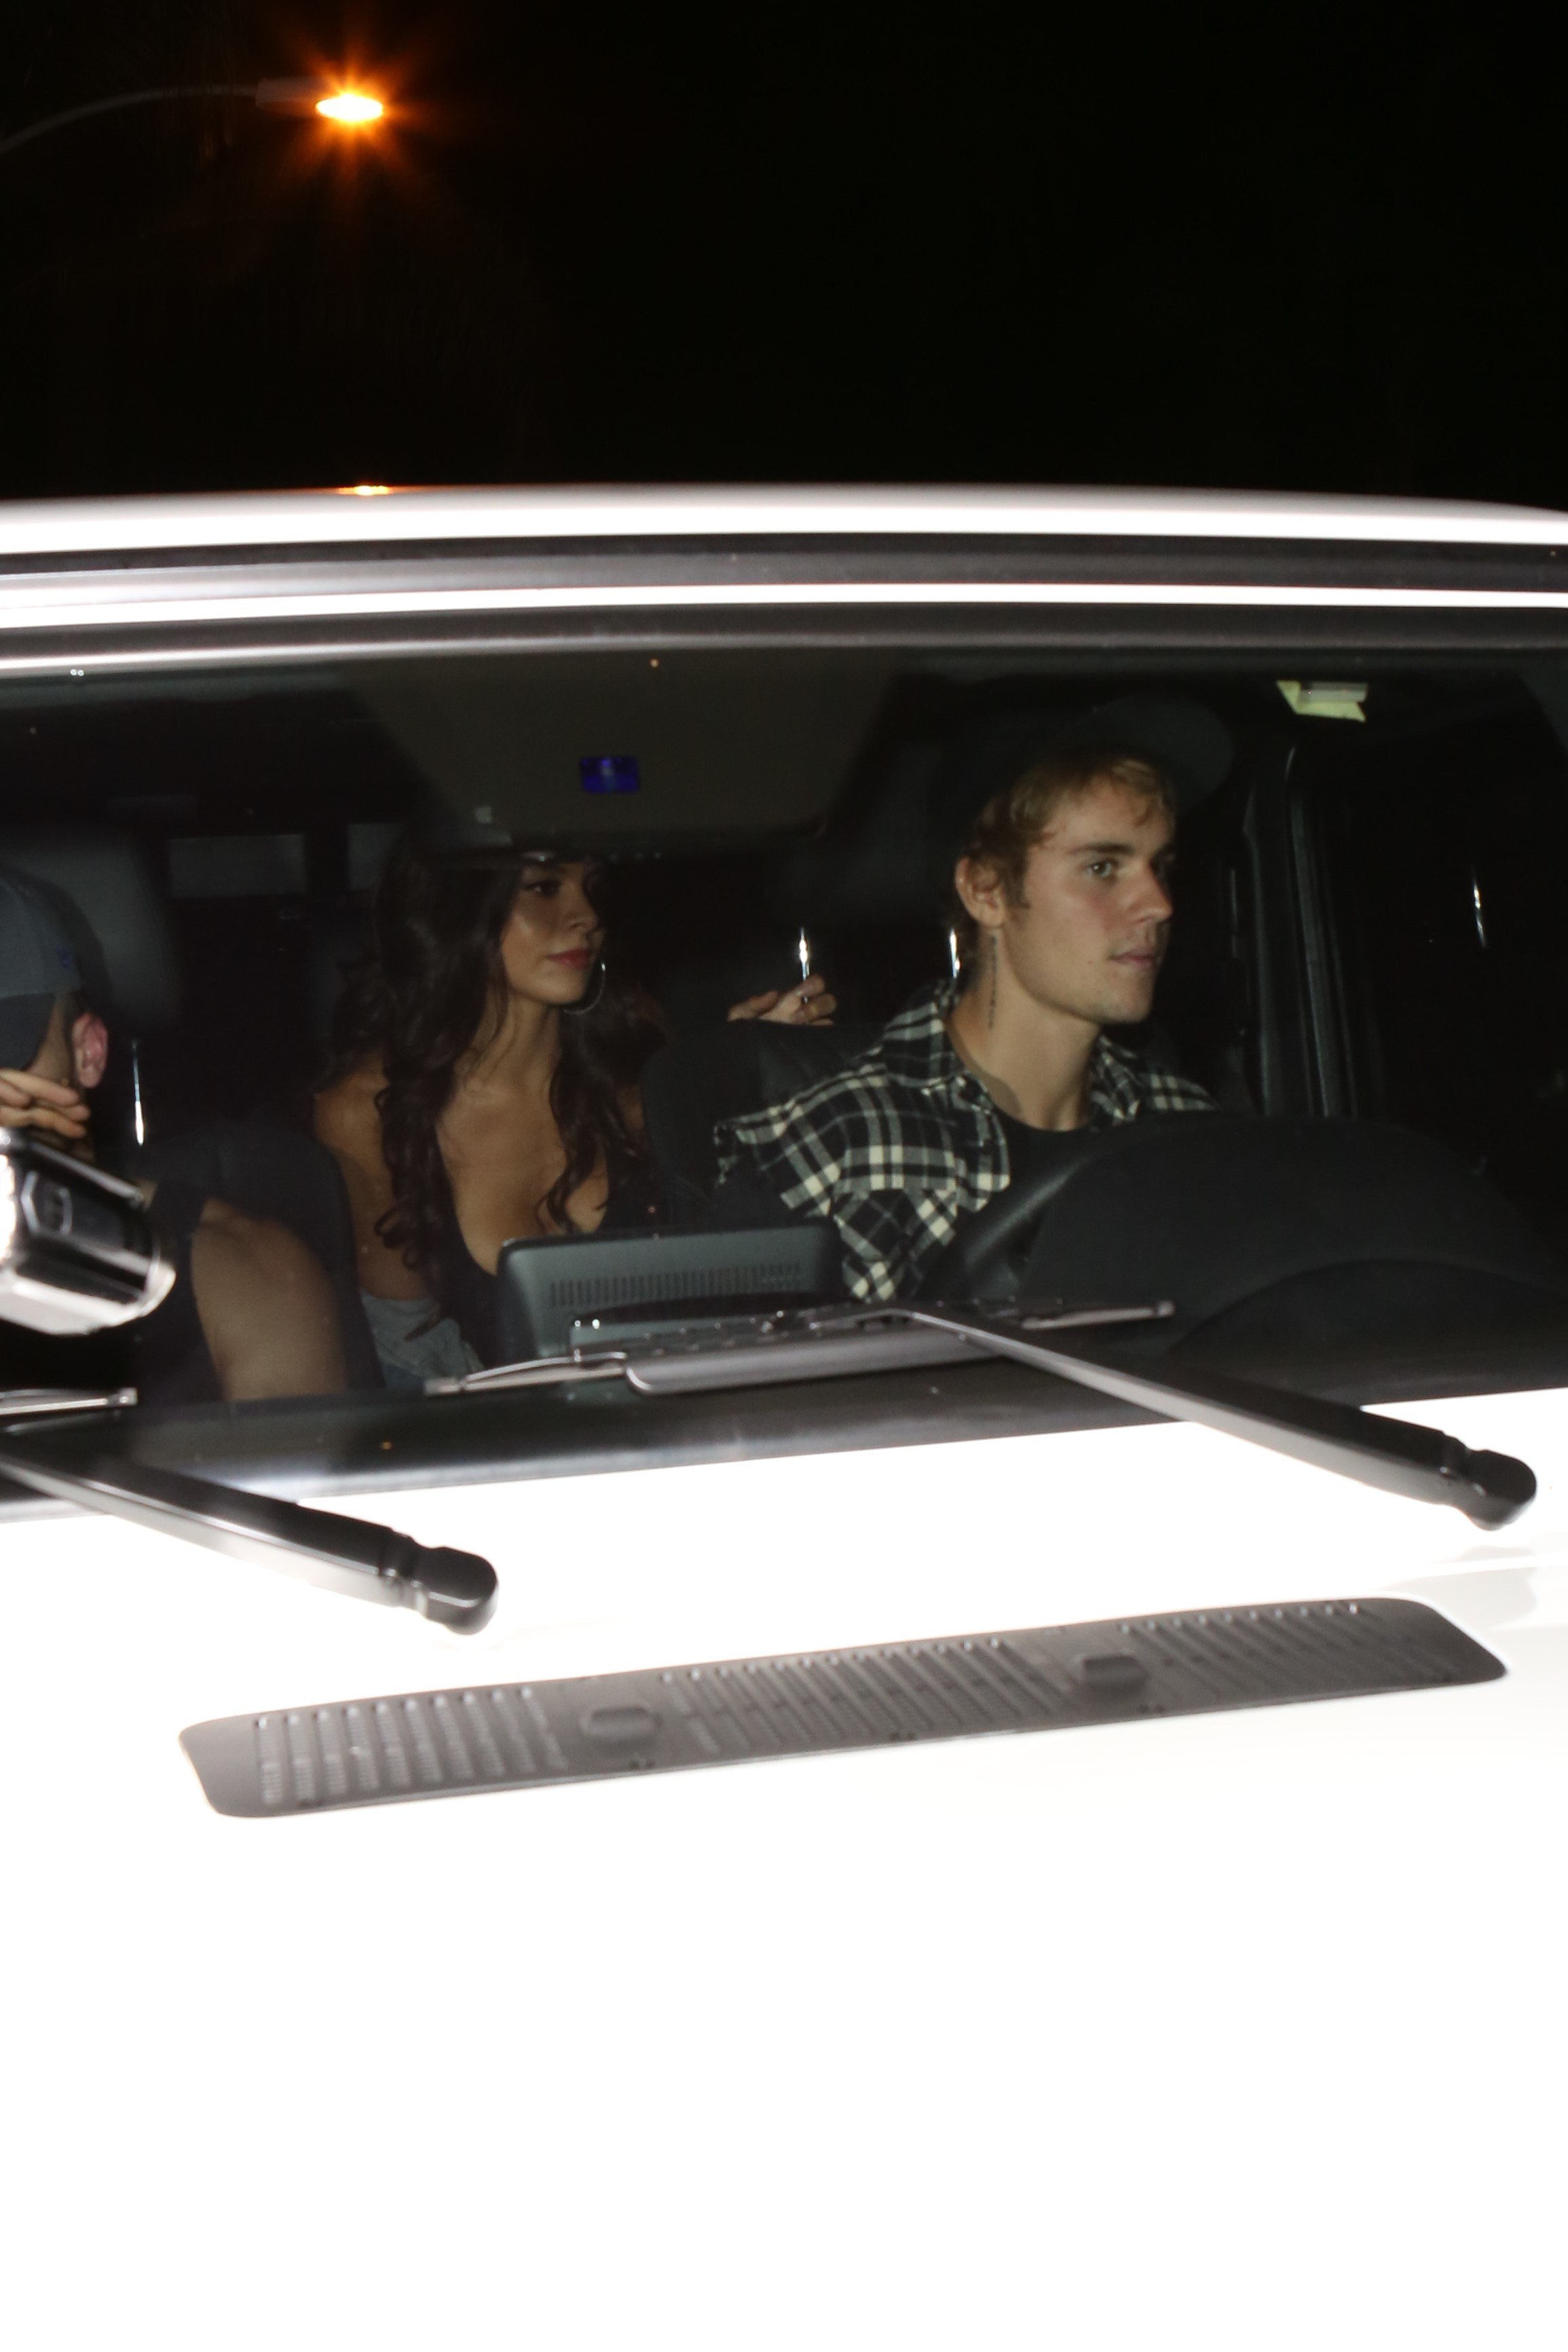 Justin Bieber and new girlfriend Paola Paulin attend church in Los Angeles, California on Oct. 2, 2017.